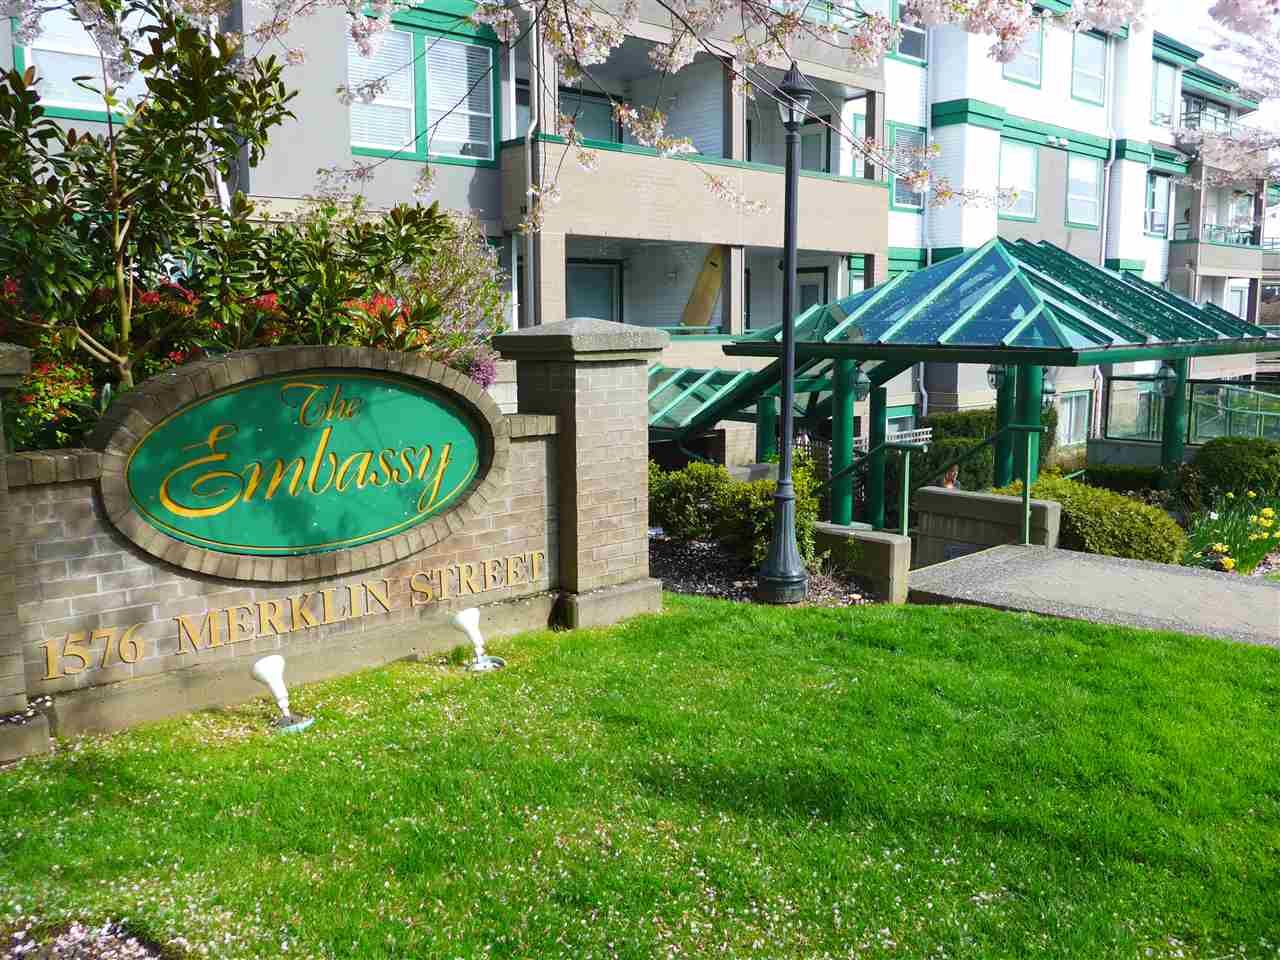 "Main Photo: 201 1576 MERKLIN Street: White Rock Condo for sale in ""The Embassy"" (South Surrey White Rock)  : MLS®# R2259348"